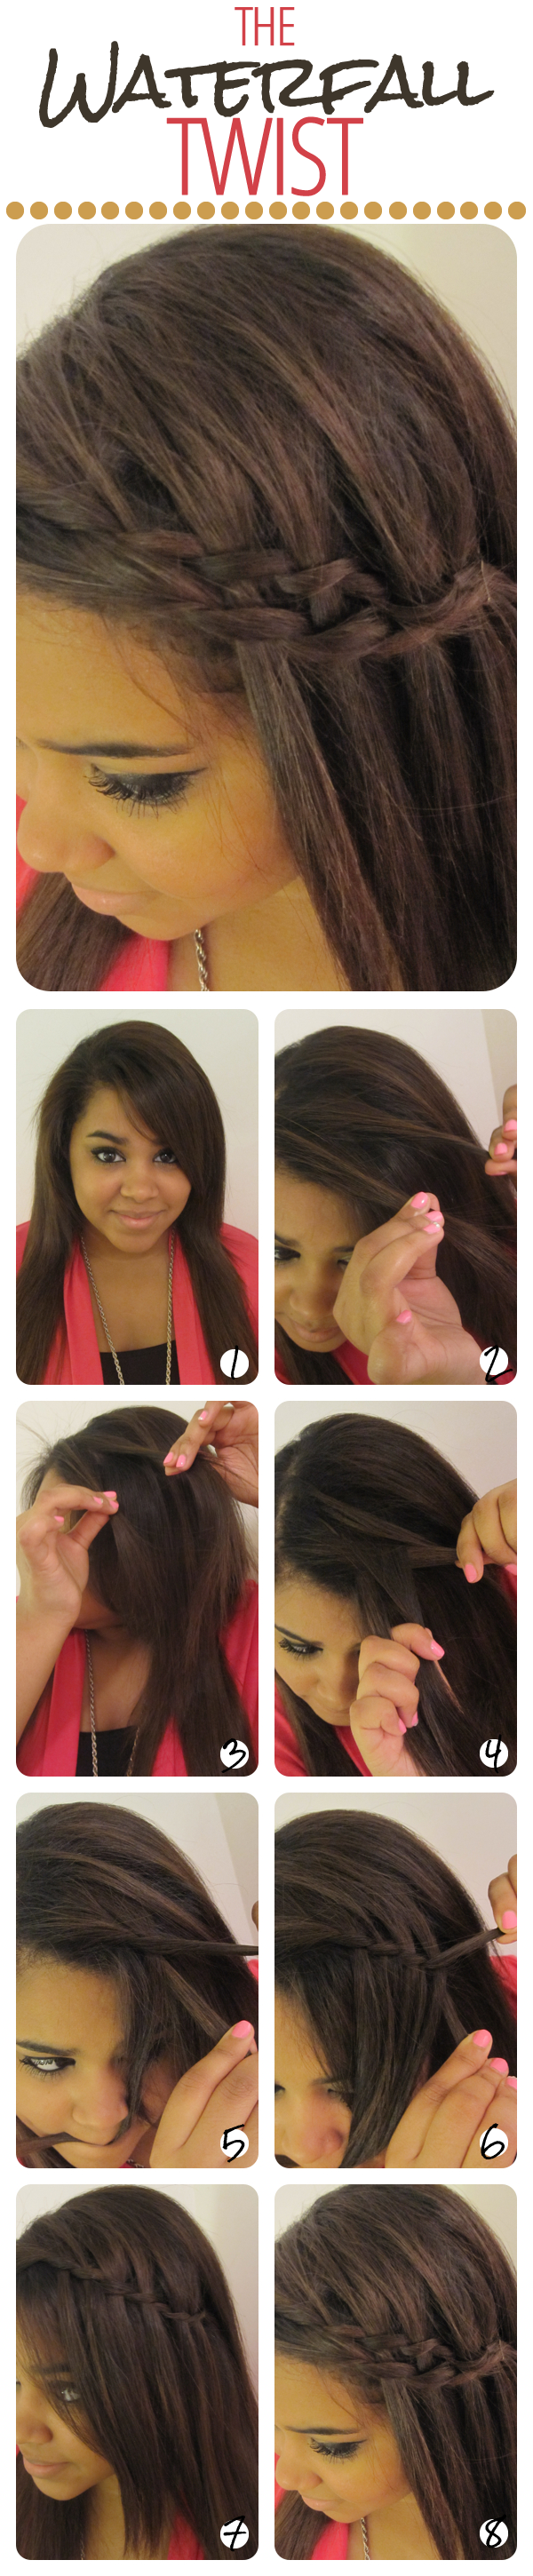 The Waterfall Twist. Totally doing it